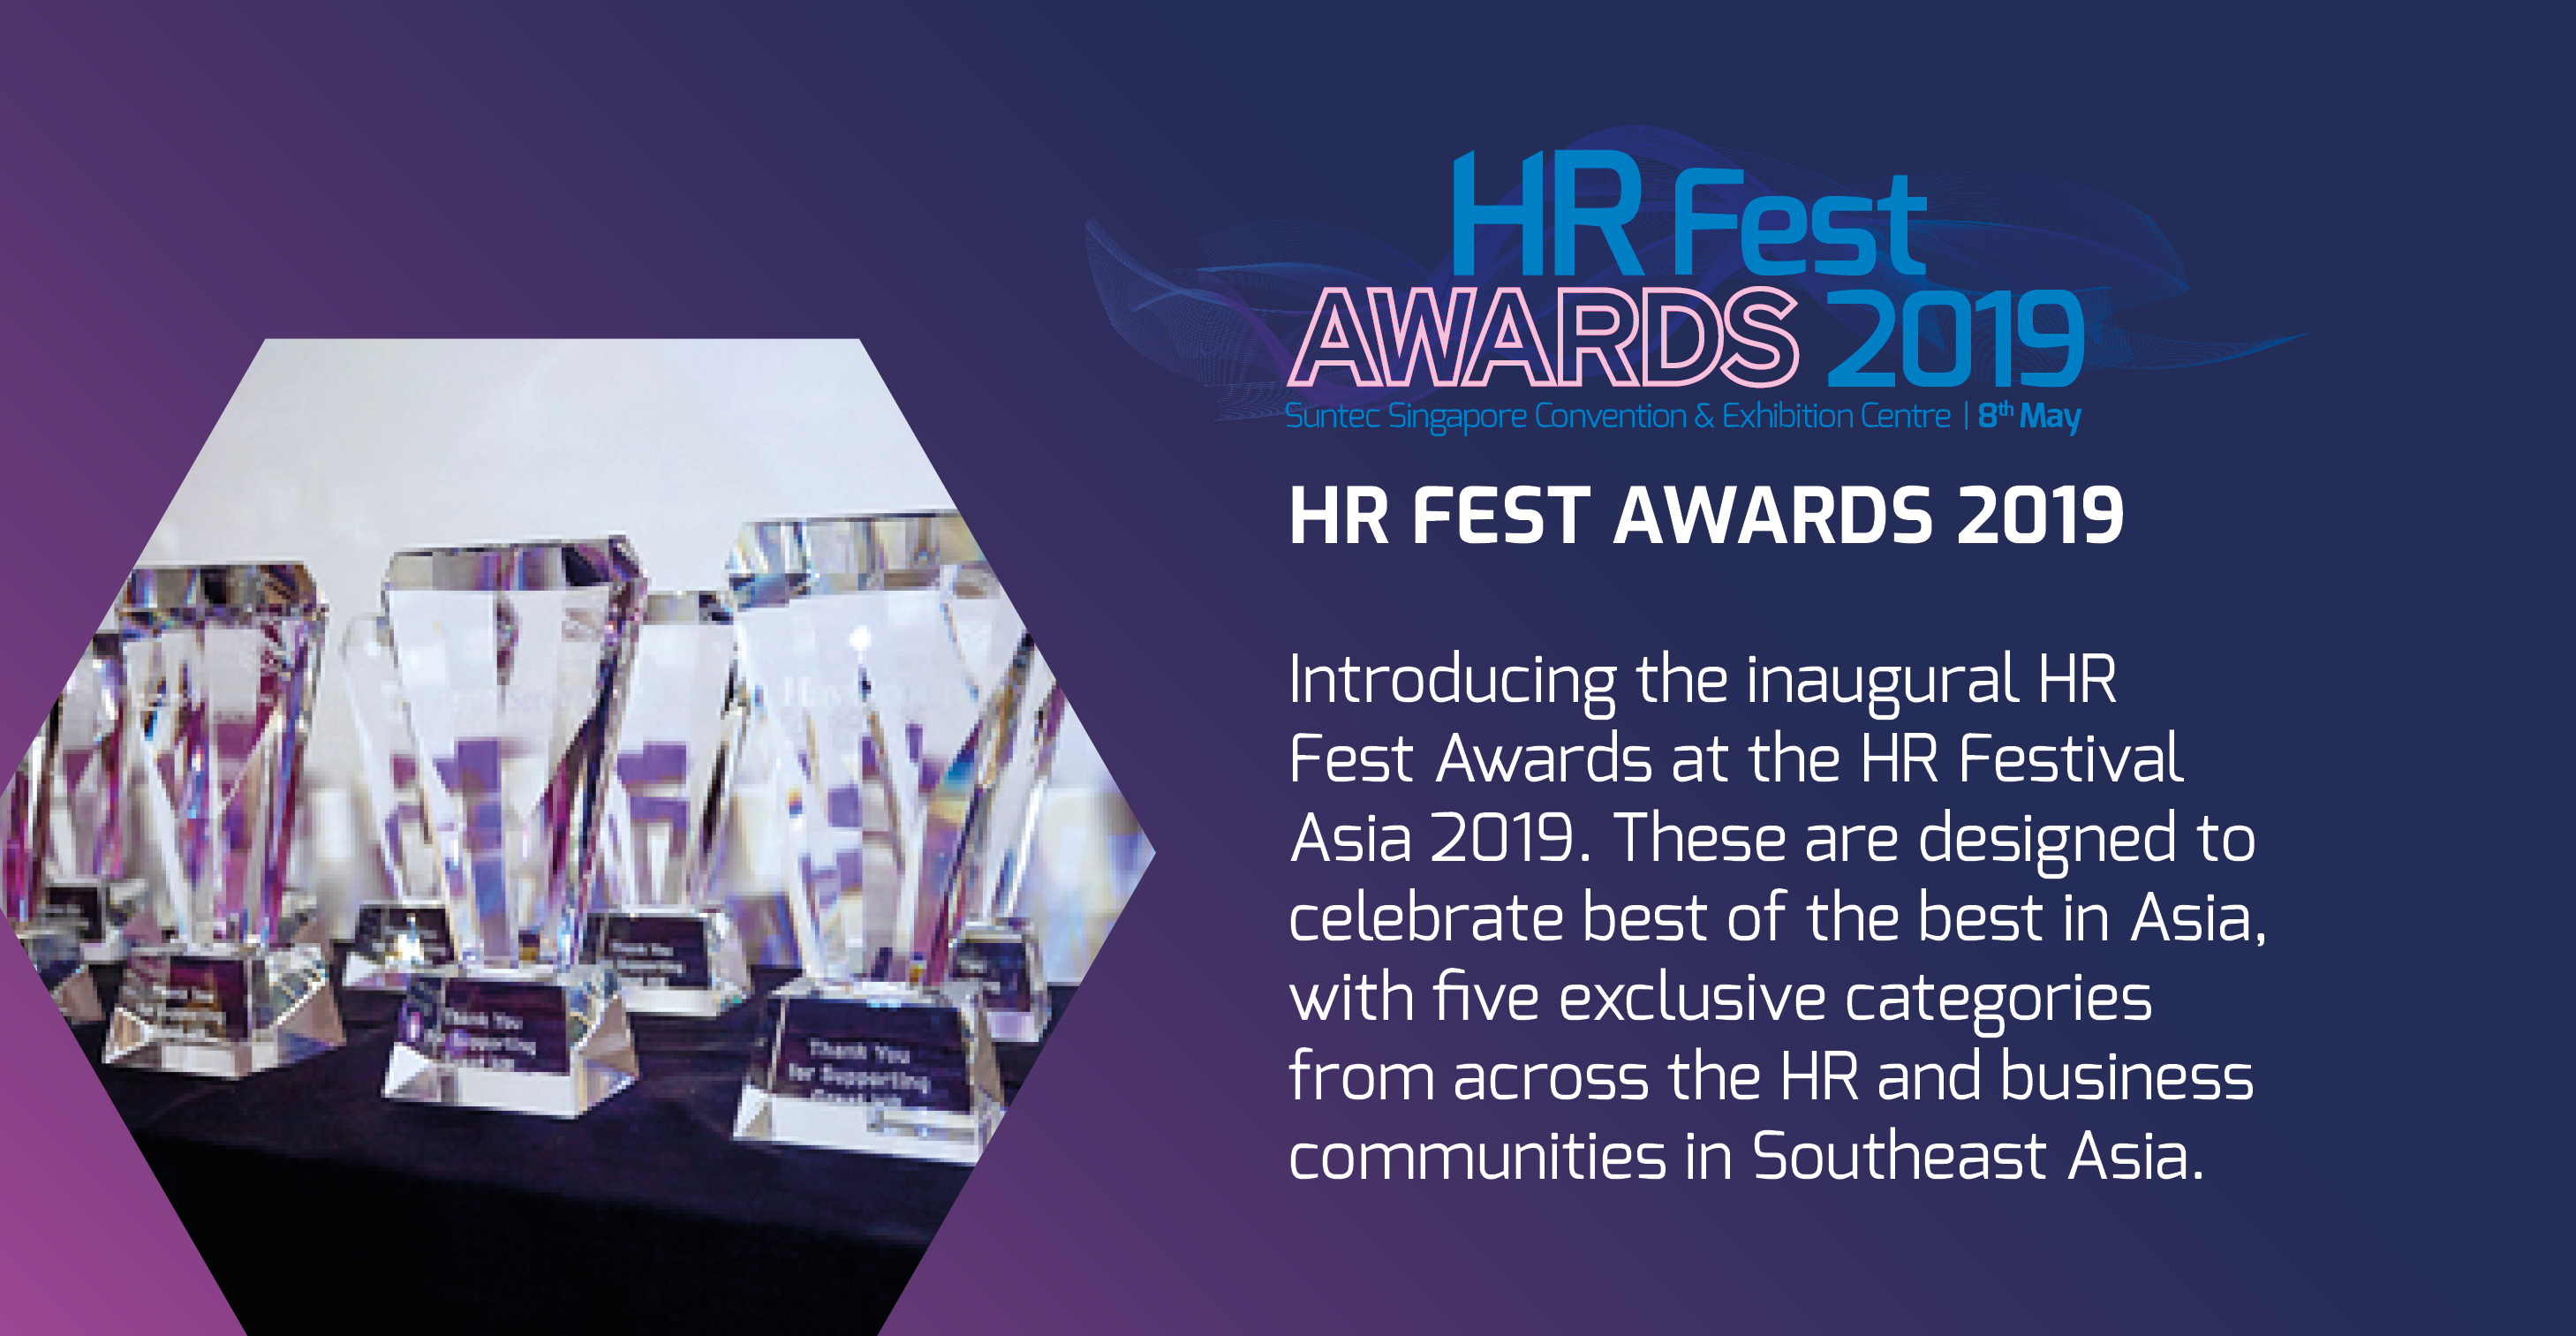 hr fest awards 2